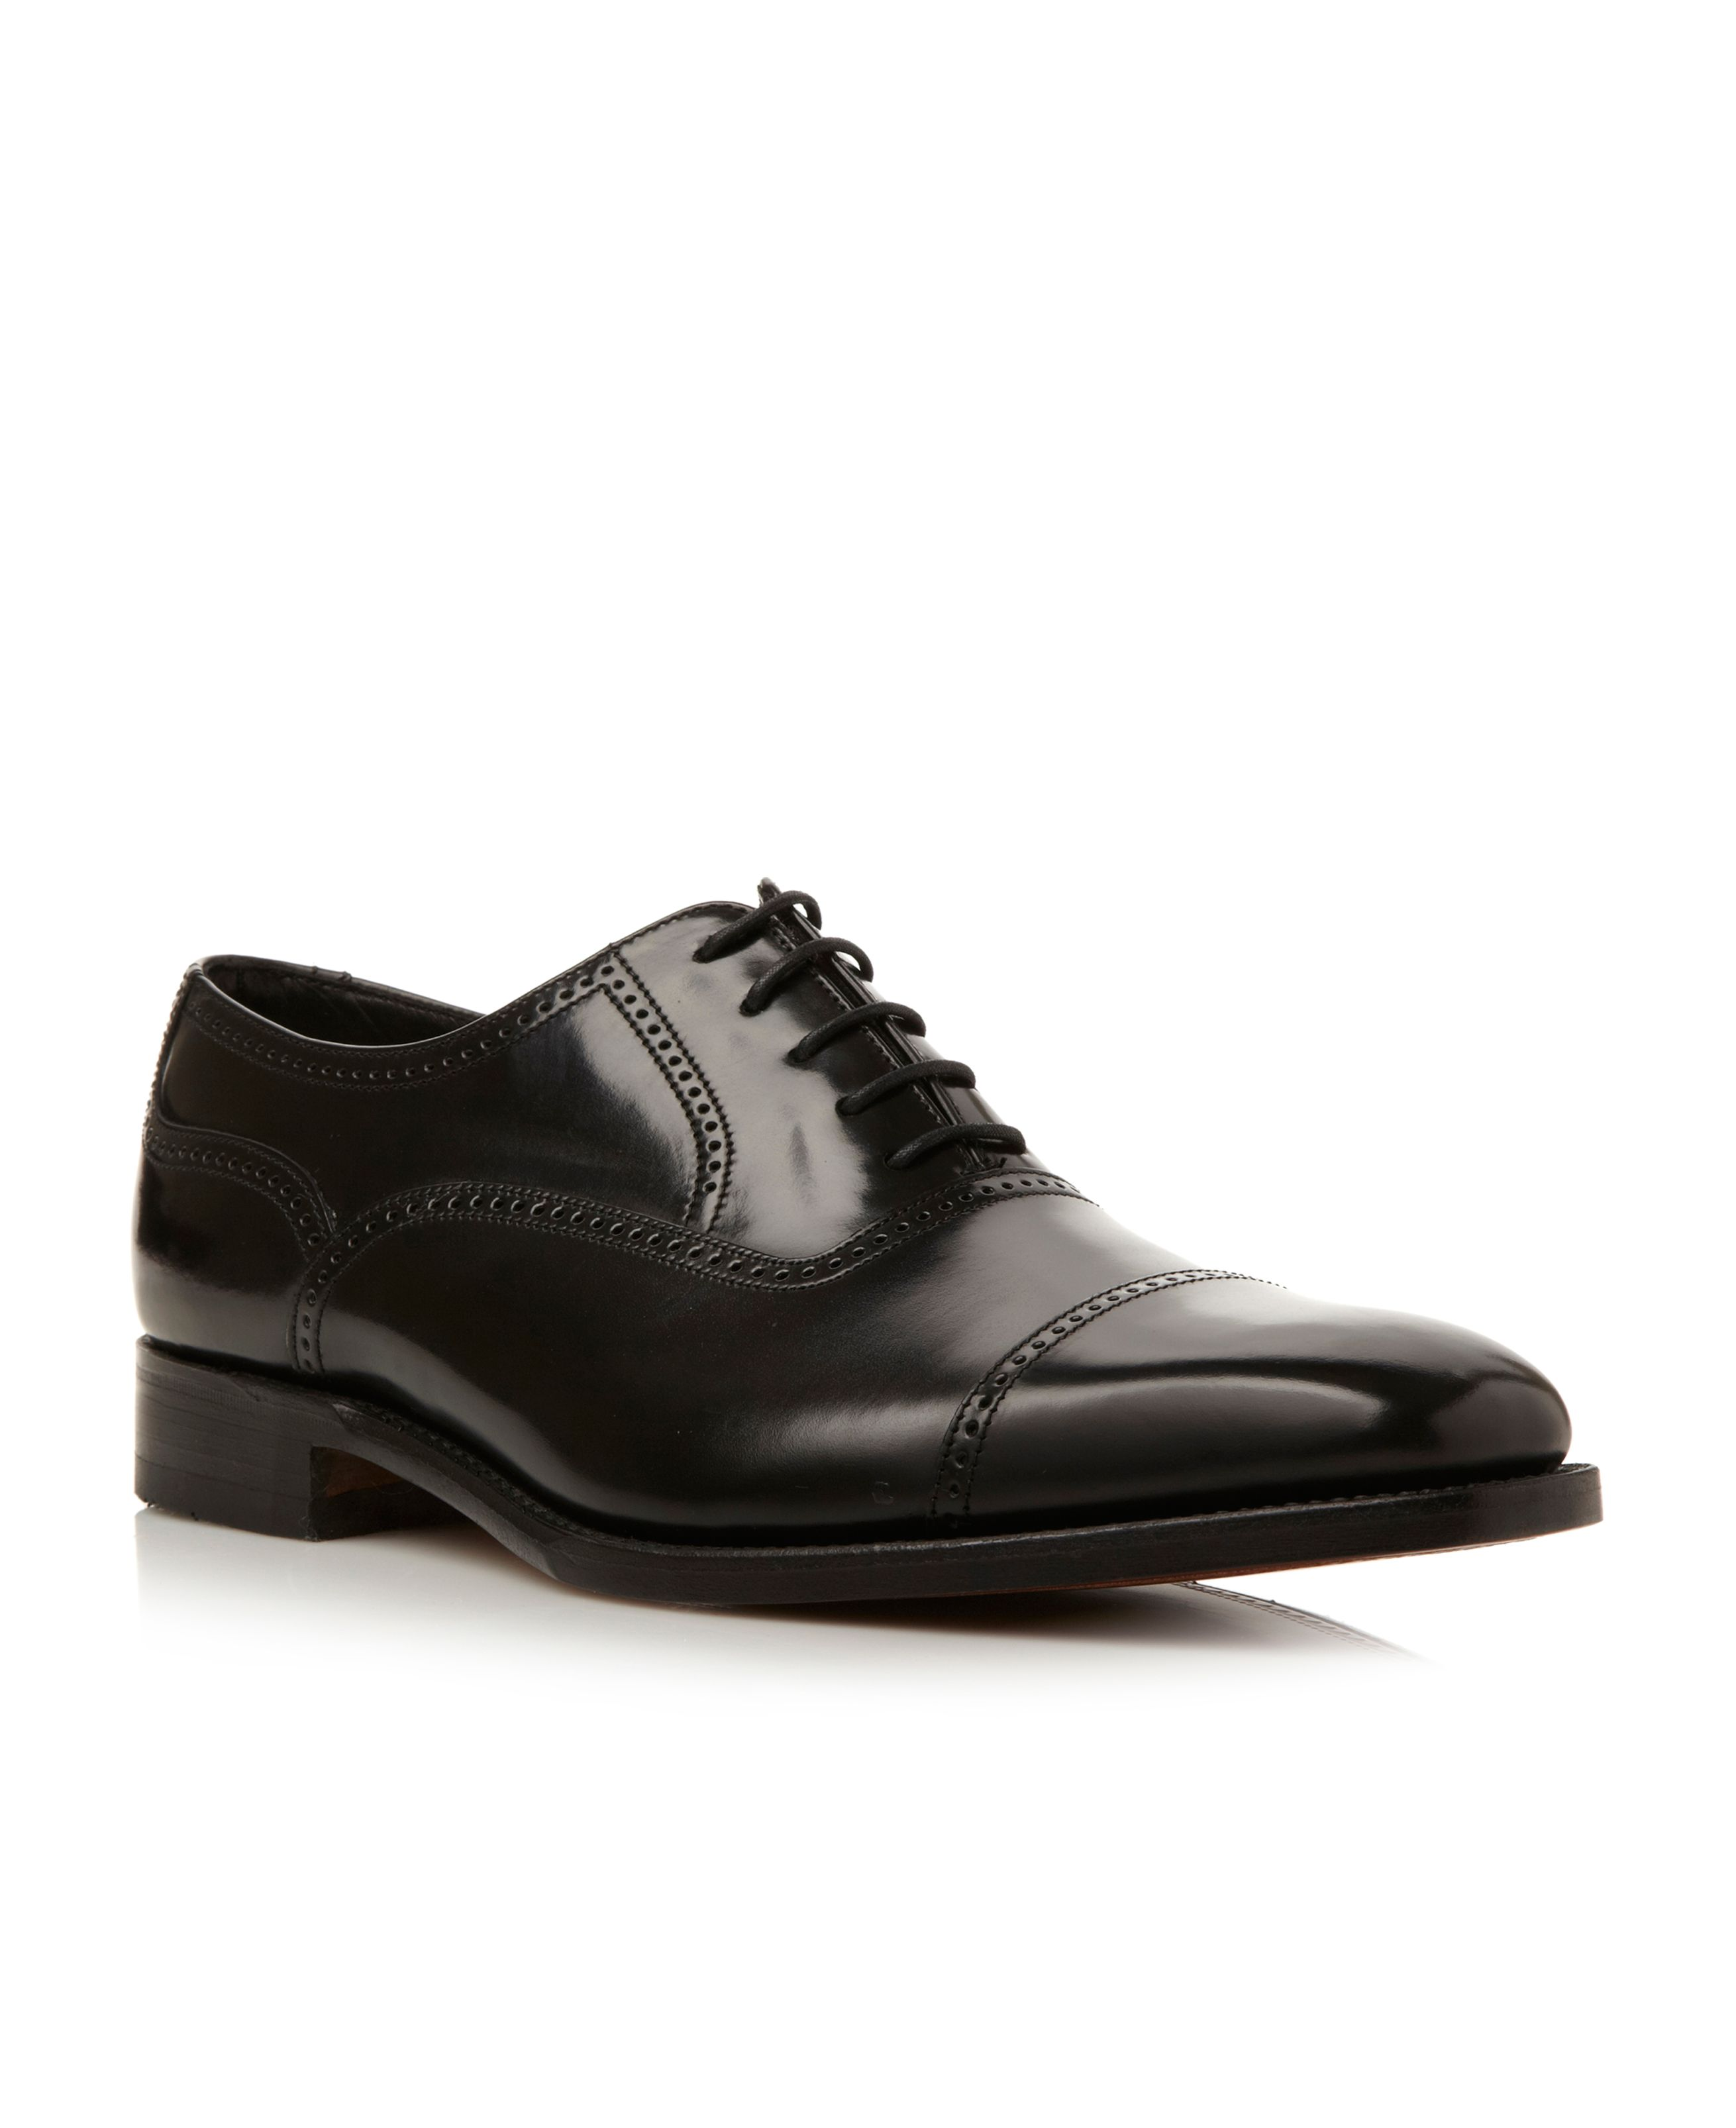 Grant formal leather shoes